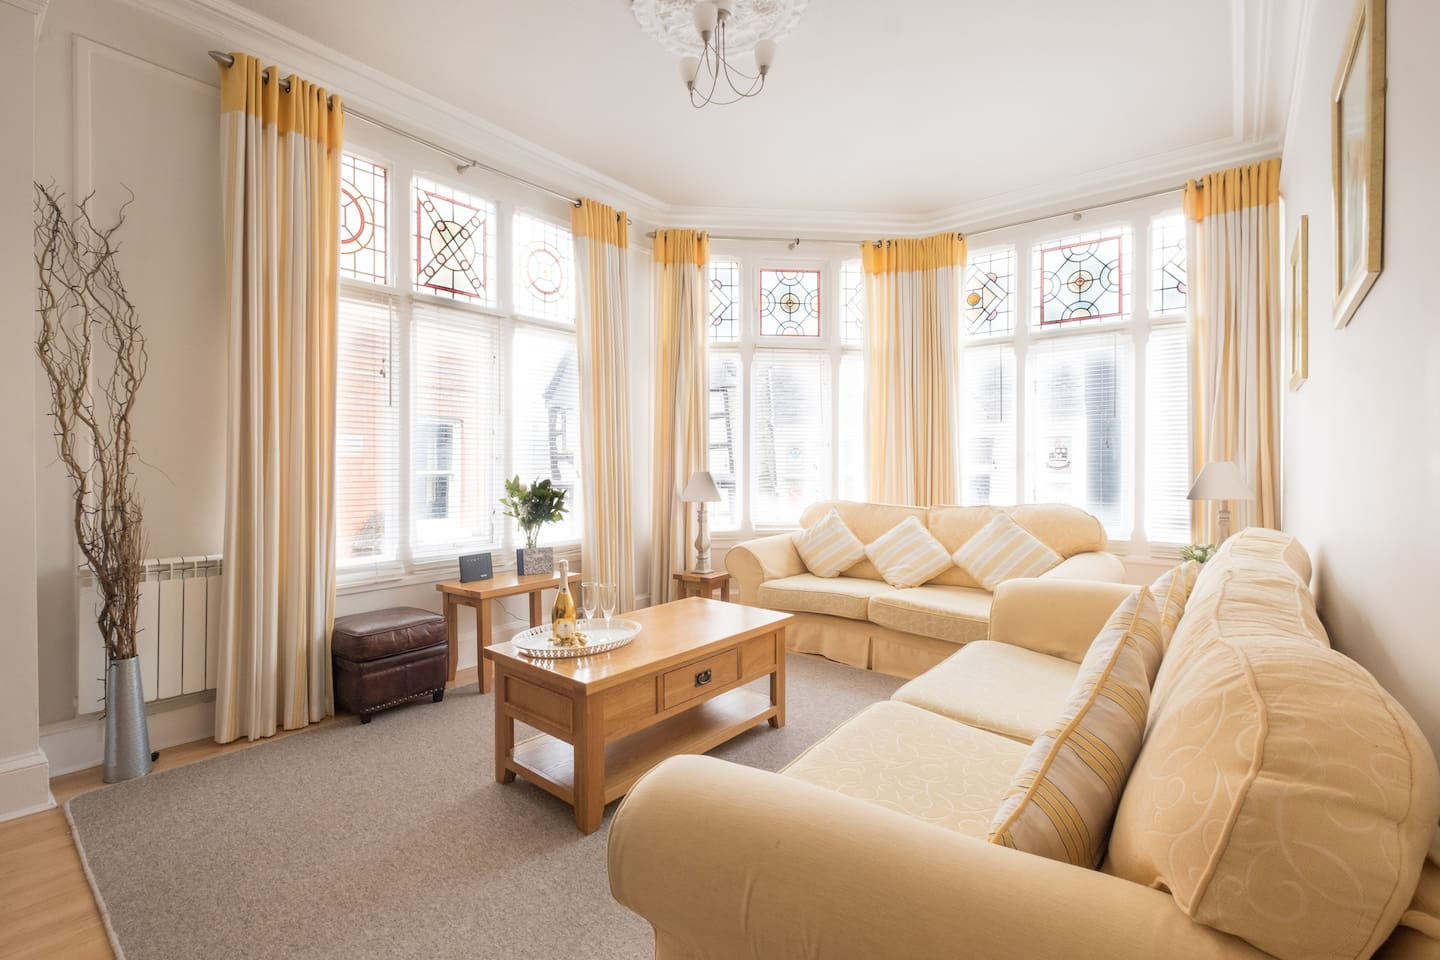 Luxury first floor apartment in the heart of Dartmouth